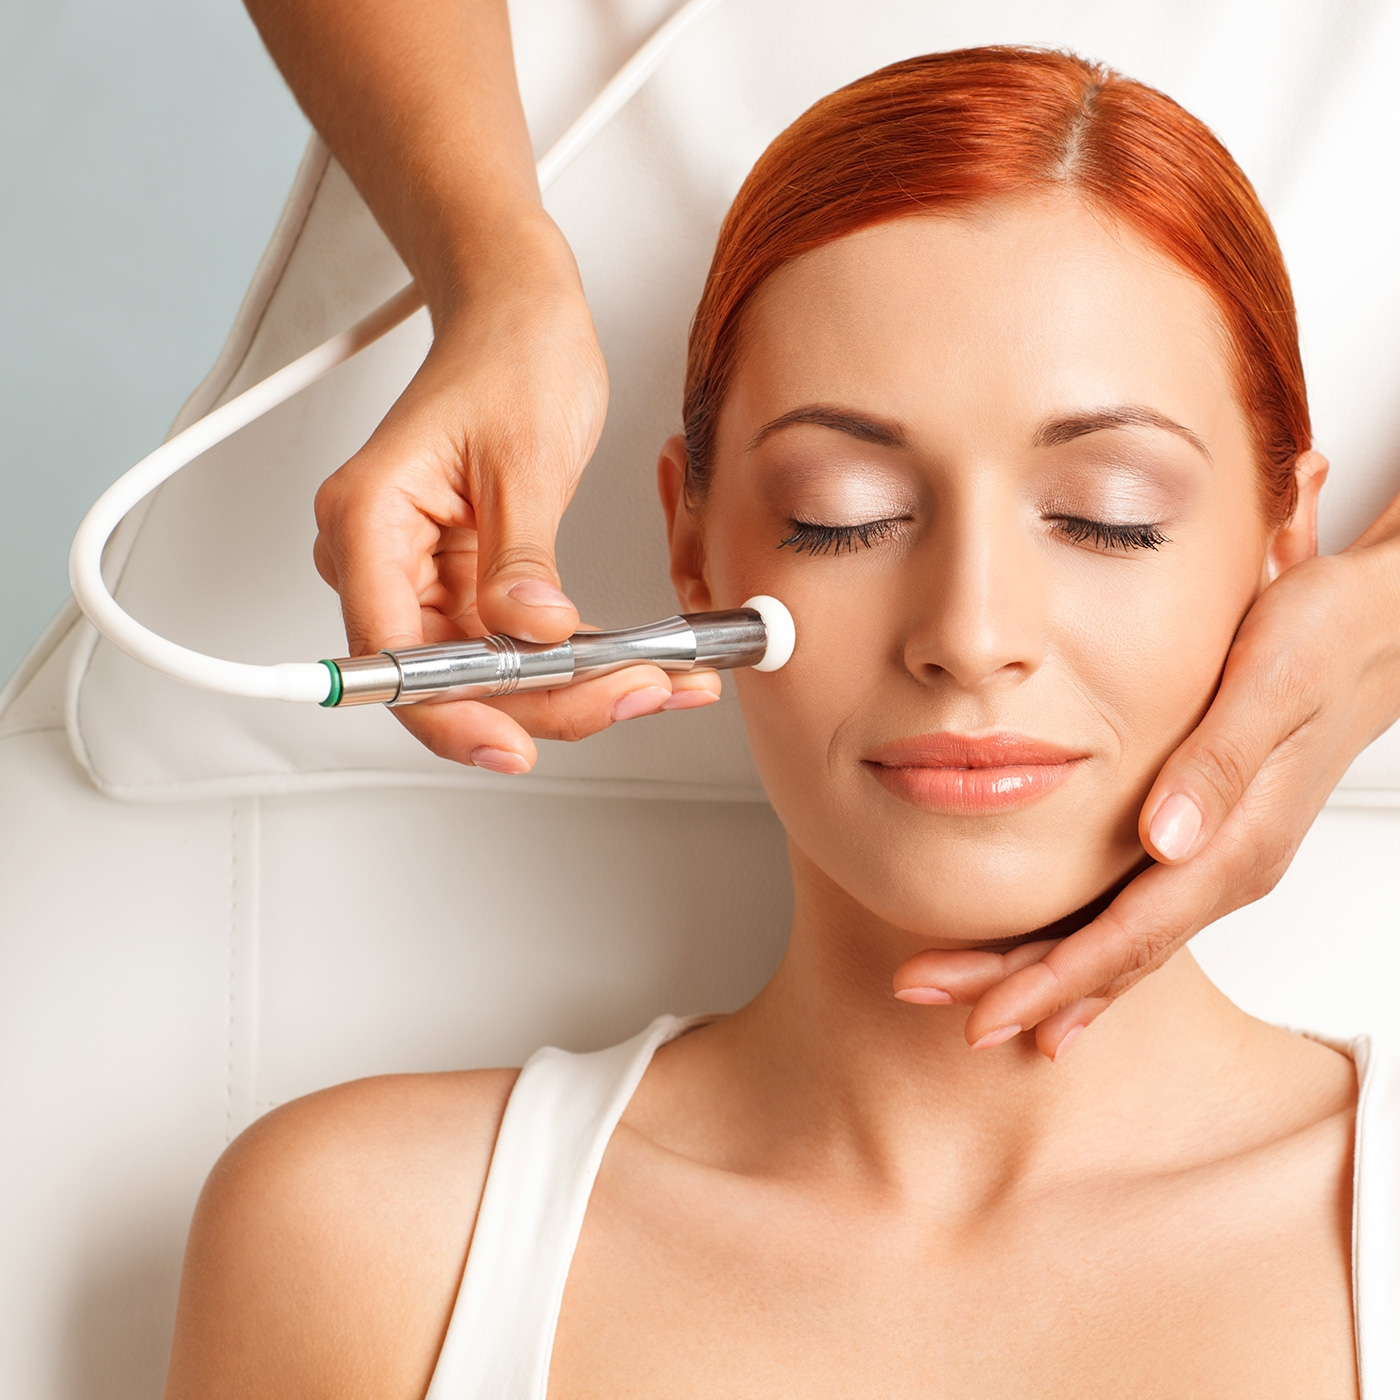 Microdermabrasion 3 in 1 Combo   Microdermabrasion is a facial procedure that uses manual exfoliation to remove the outer layer of skin.   Benifits are…   - Reduces Fine Lines & Wrinkles - Shrinks and Cleans Pores - Removes Dead Skin Cells - Reduces Scaring  - Reduces & Controls Acne  - Promotes Collagen  In our 3 in 1 Combo you receive a deep cleansing, microdermabrasion, pumpkin enzyme peel, extraction and an organic clay mask and facial massage.   $100